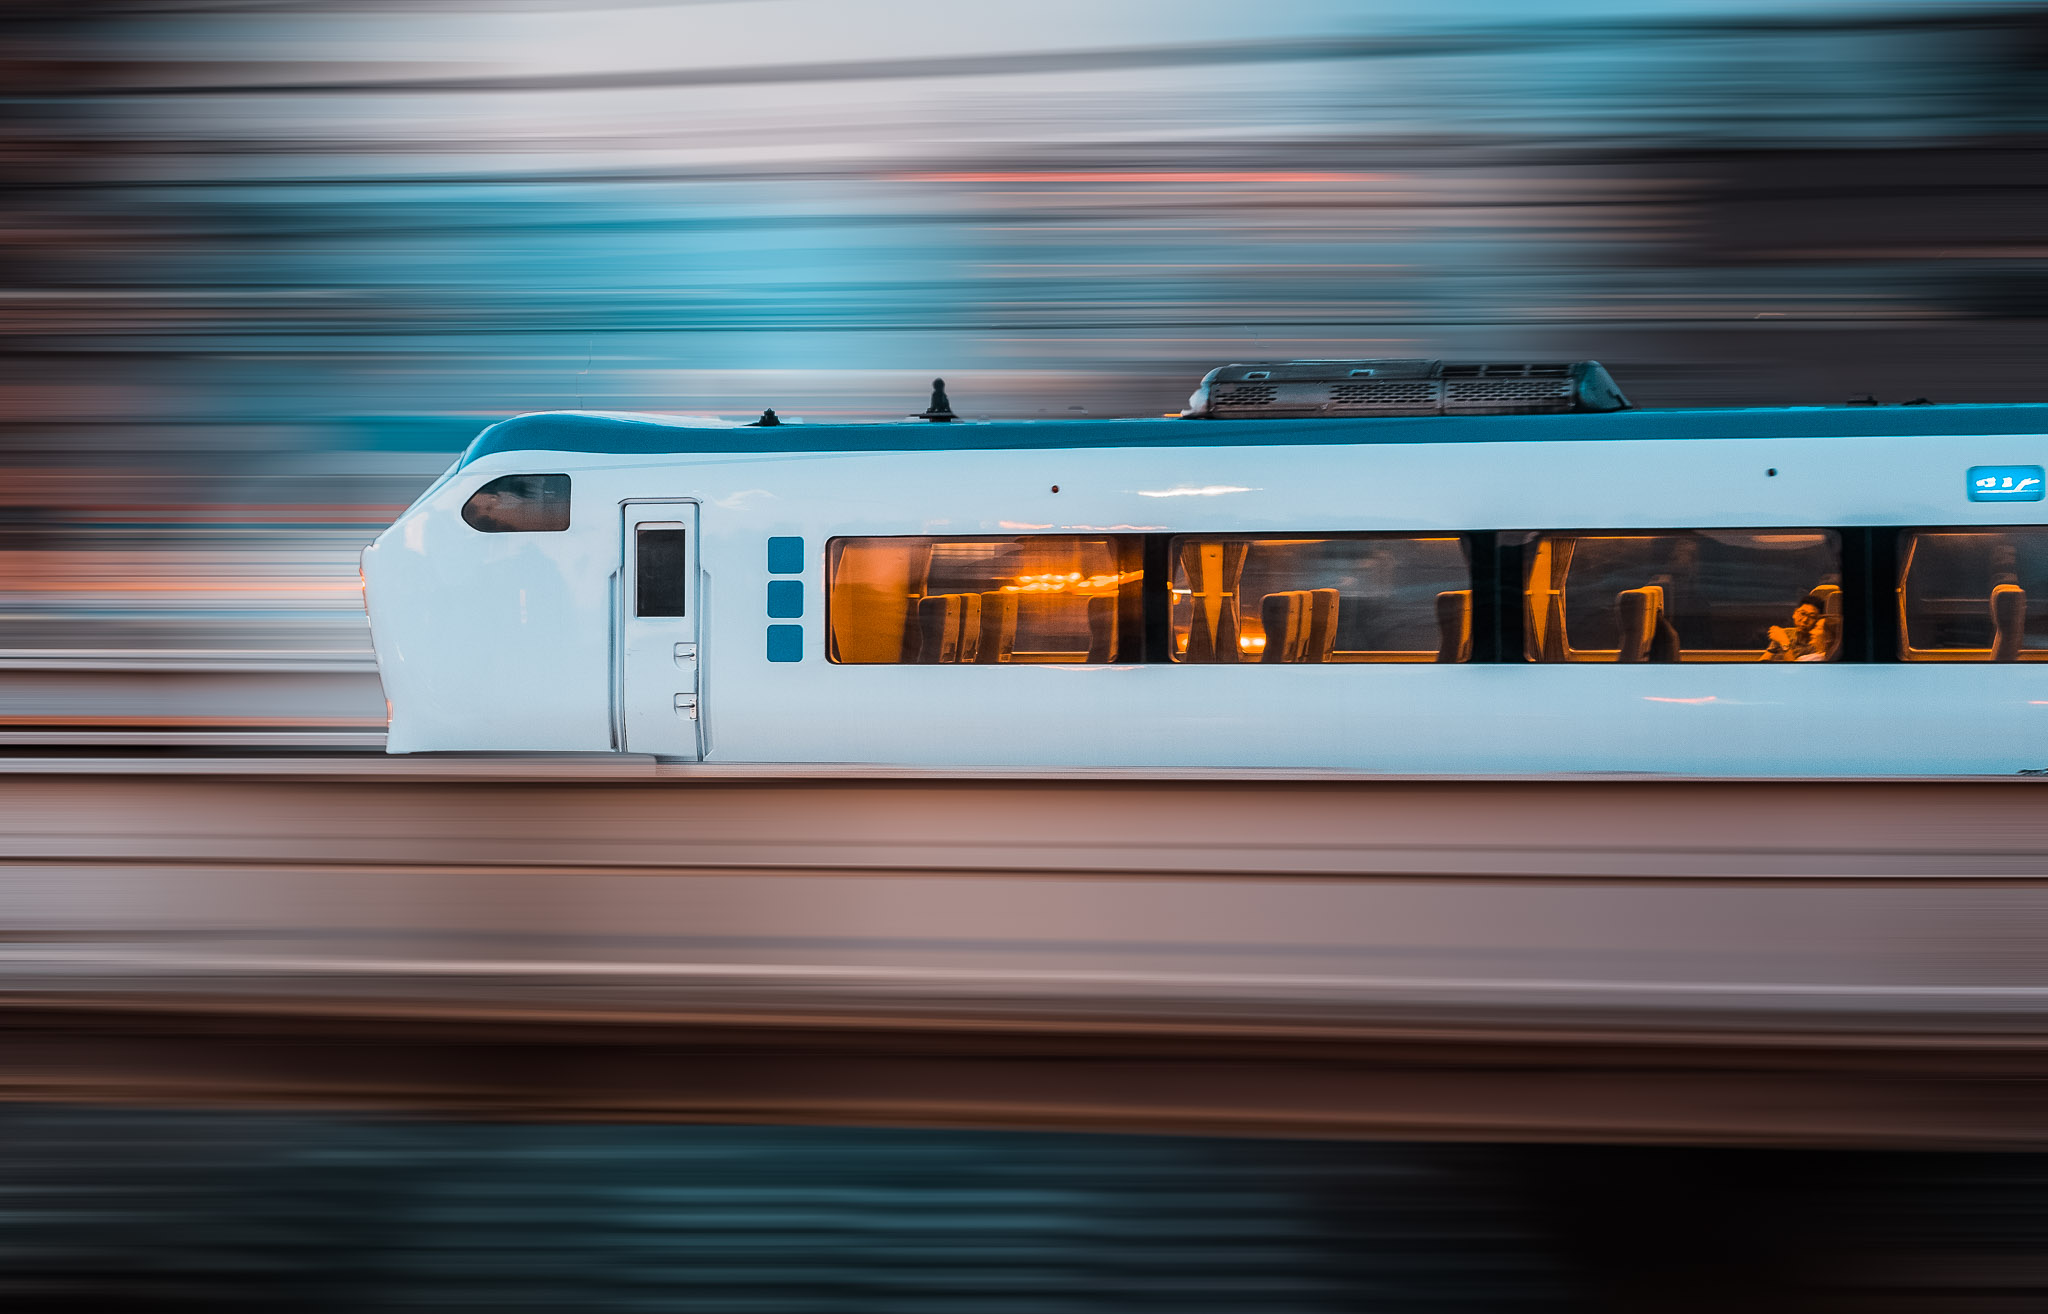 Train Spotting in Osaka - Panning Handheld @ 1/15th-1/30th. (Motion Blur Filter added in PS)